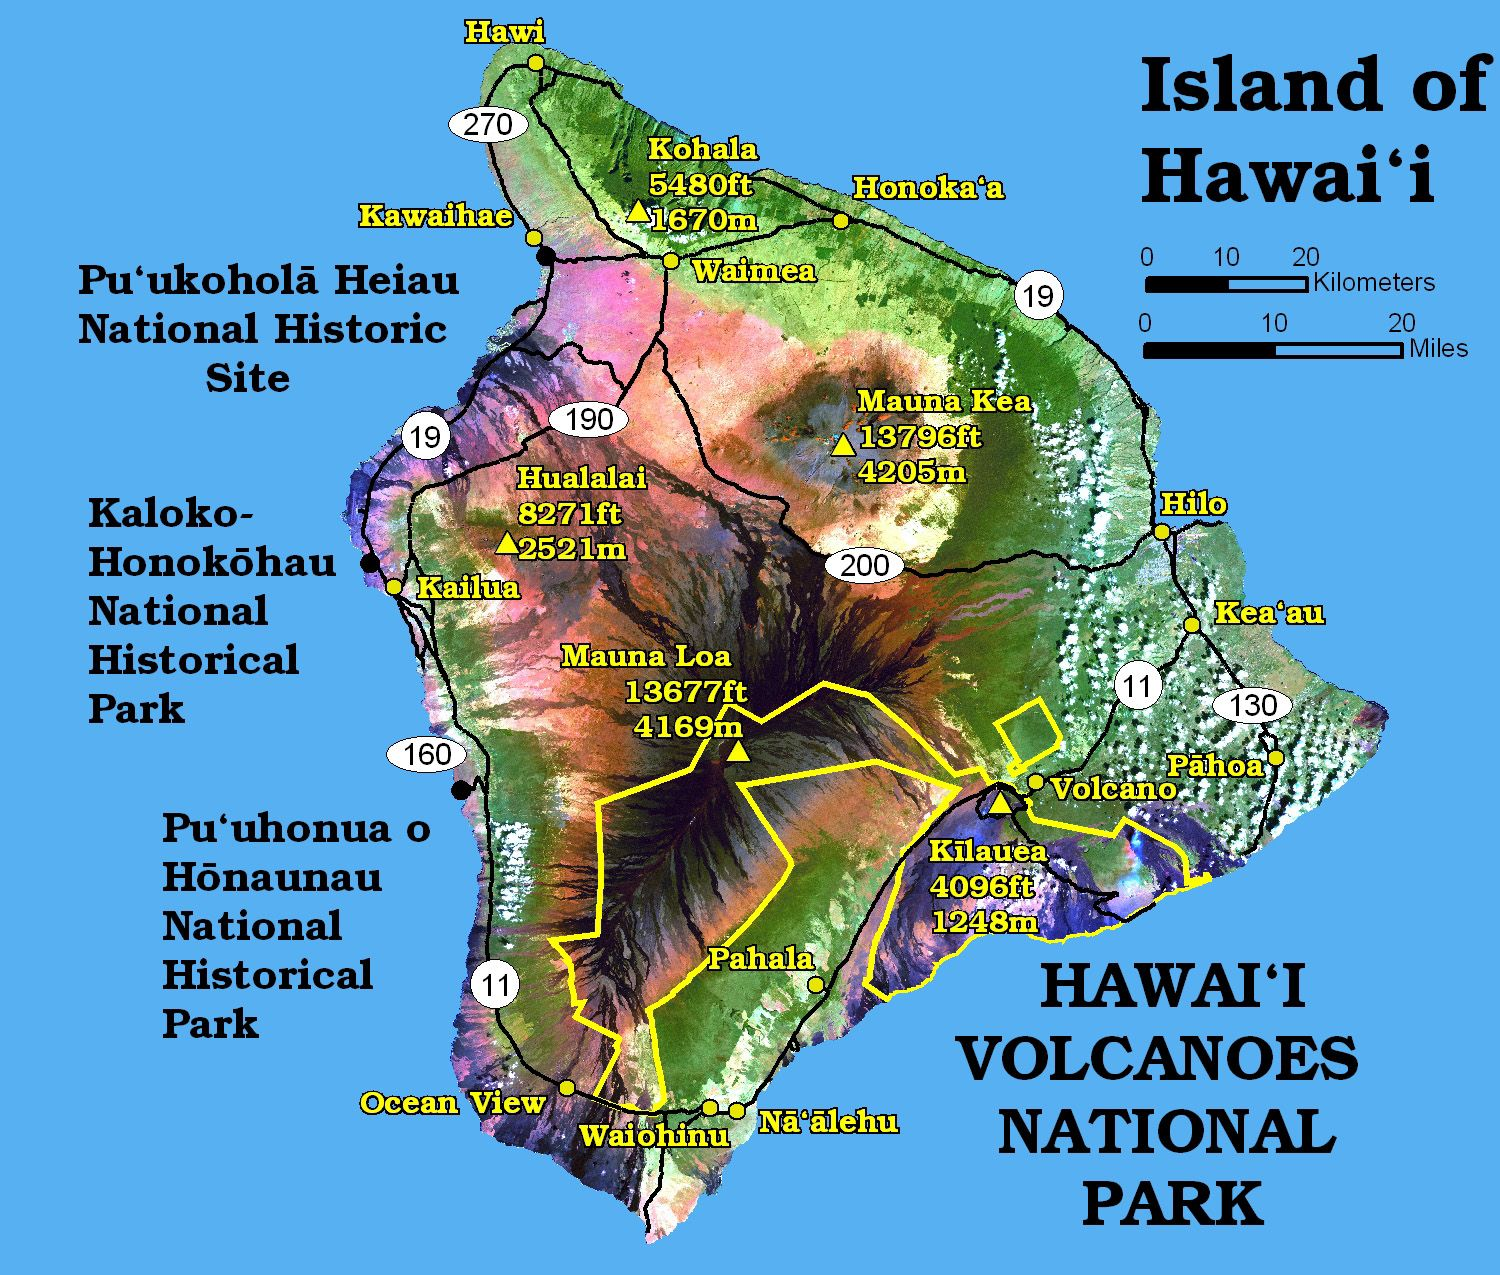 hawaii national park Volcanoes Map See map details From